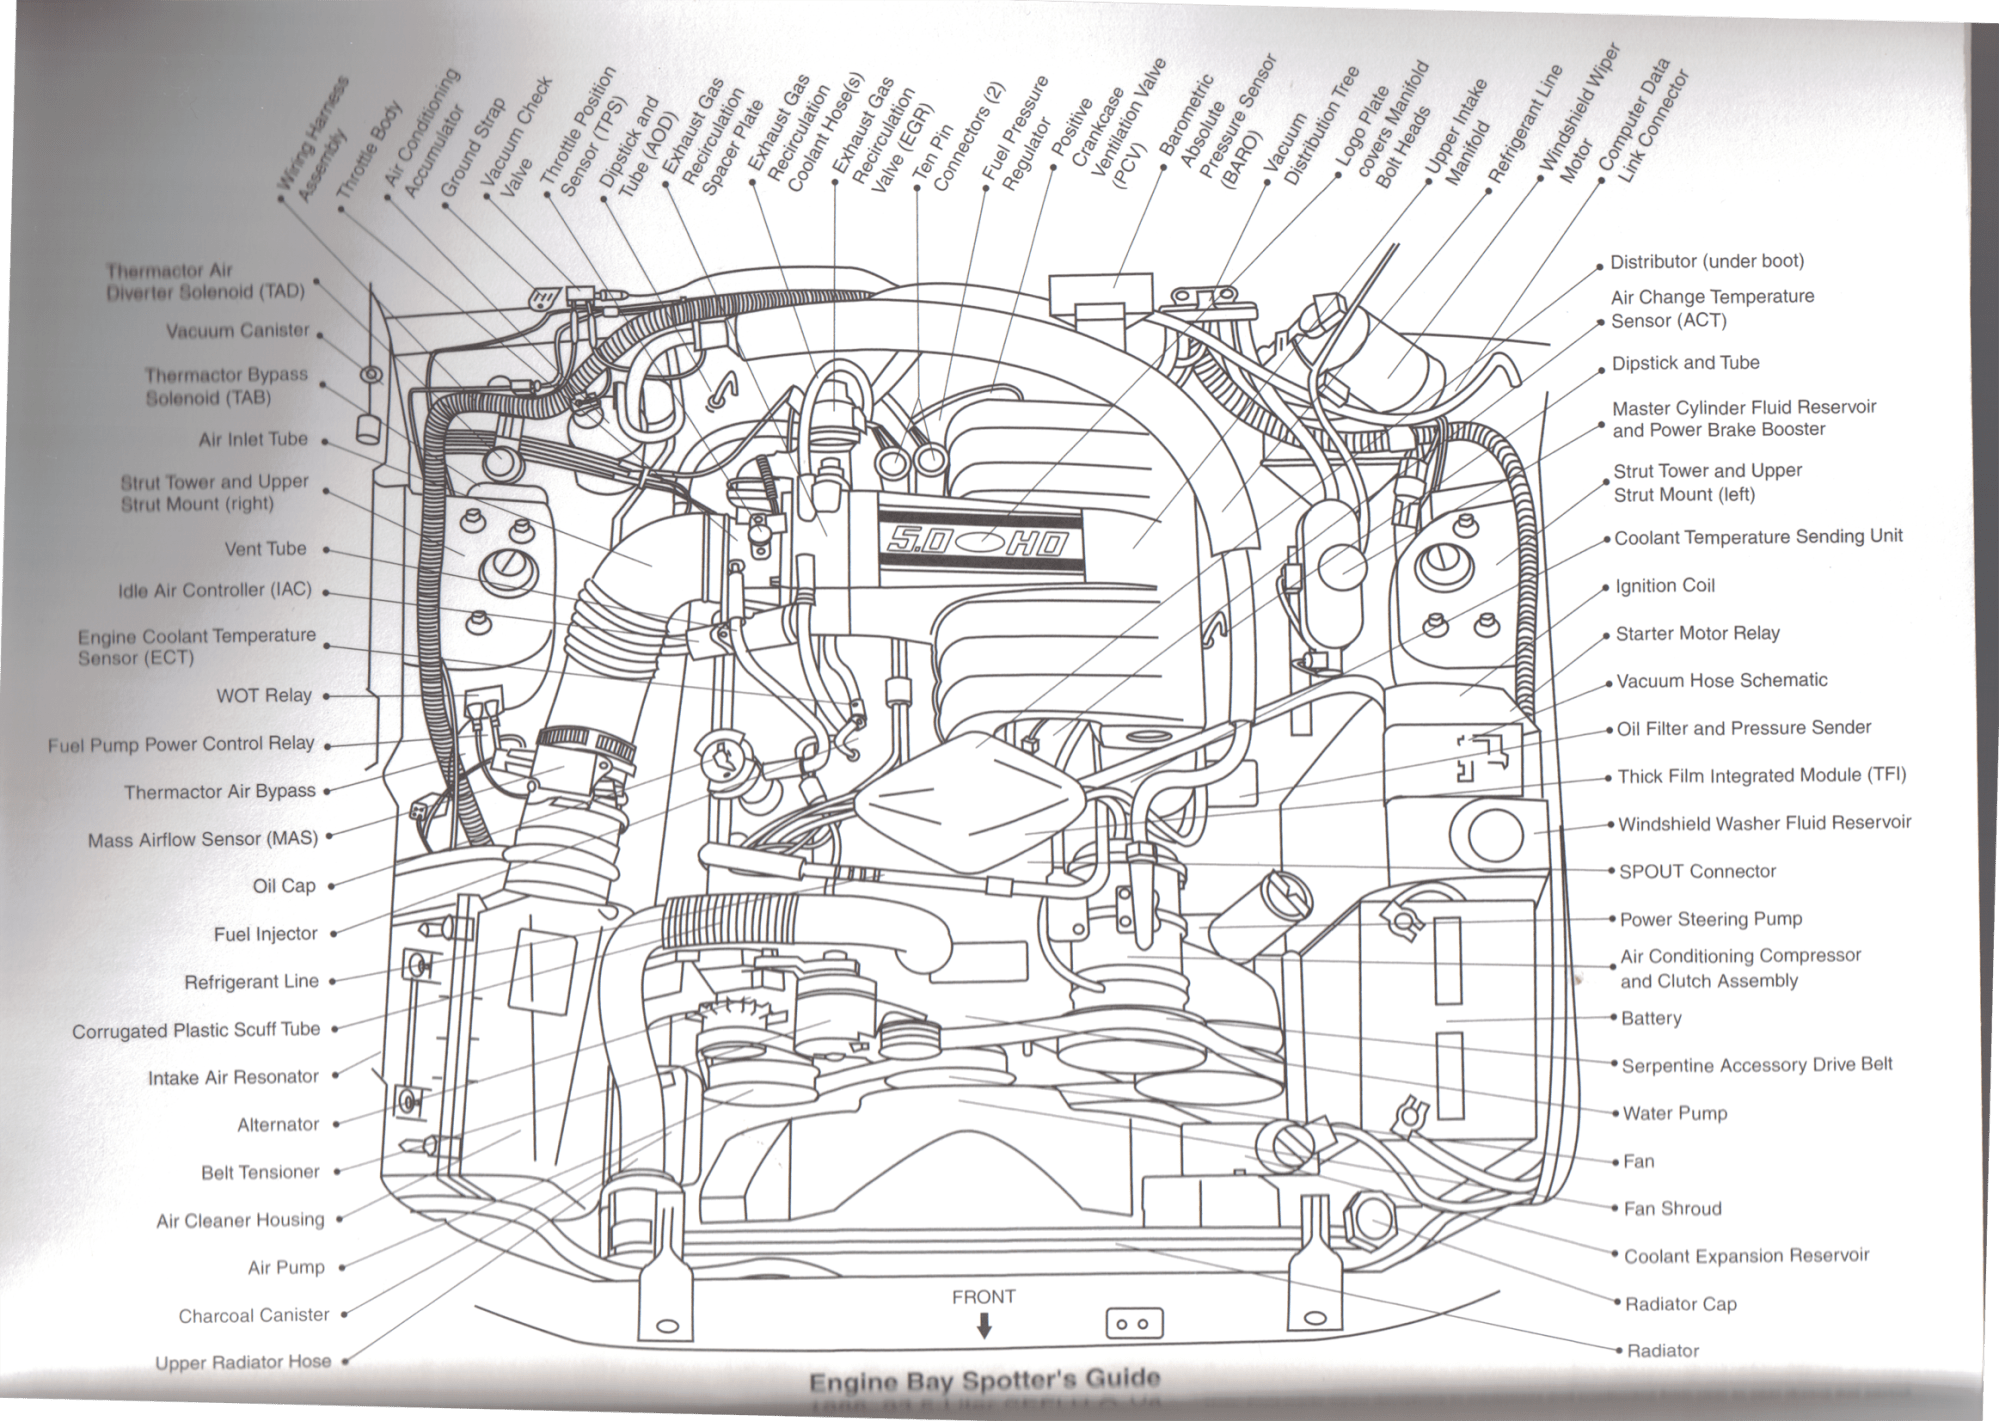 hight resolution of 1998 ford mustang engine diagram wiring diagram features 2006 mustang v6 engine diagram 1998 ford mustang